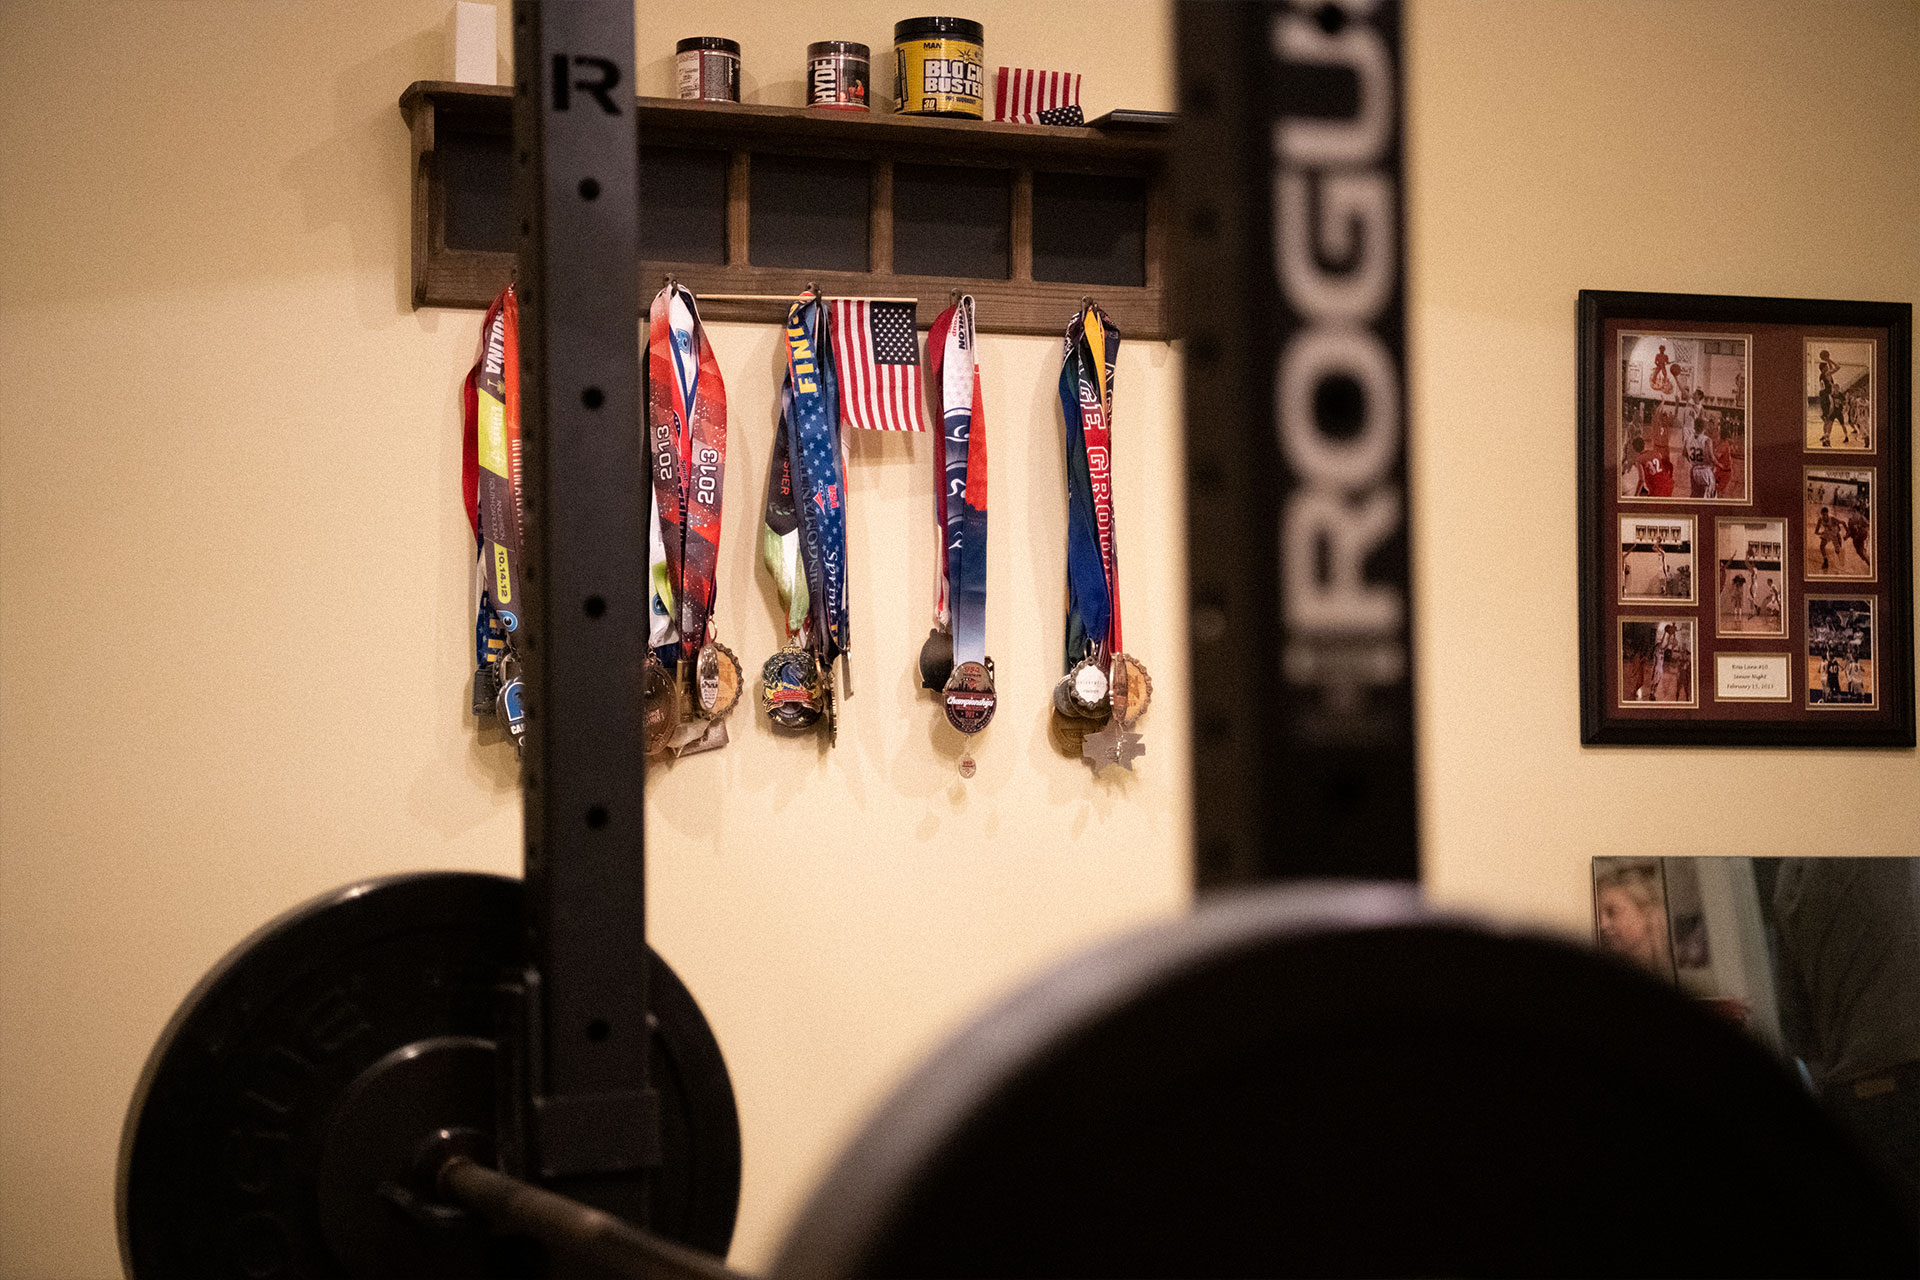 Over a dozen medals hang from the wall in Patty's weight lifting room.